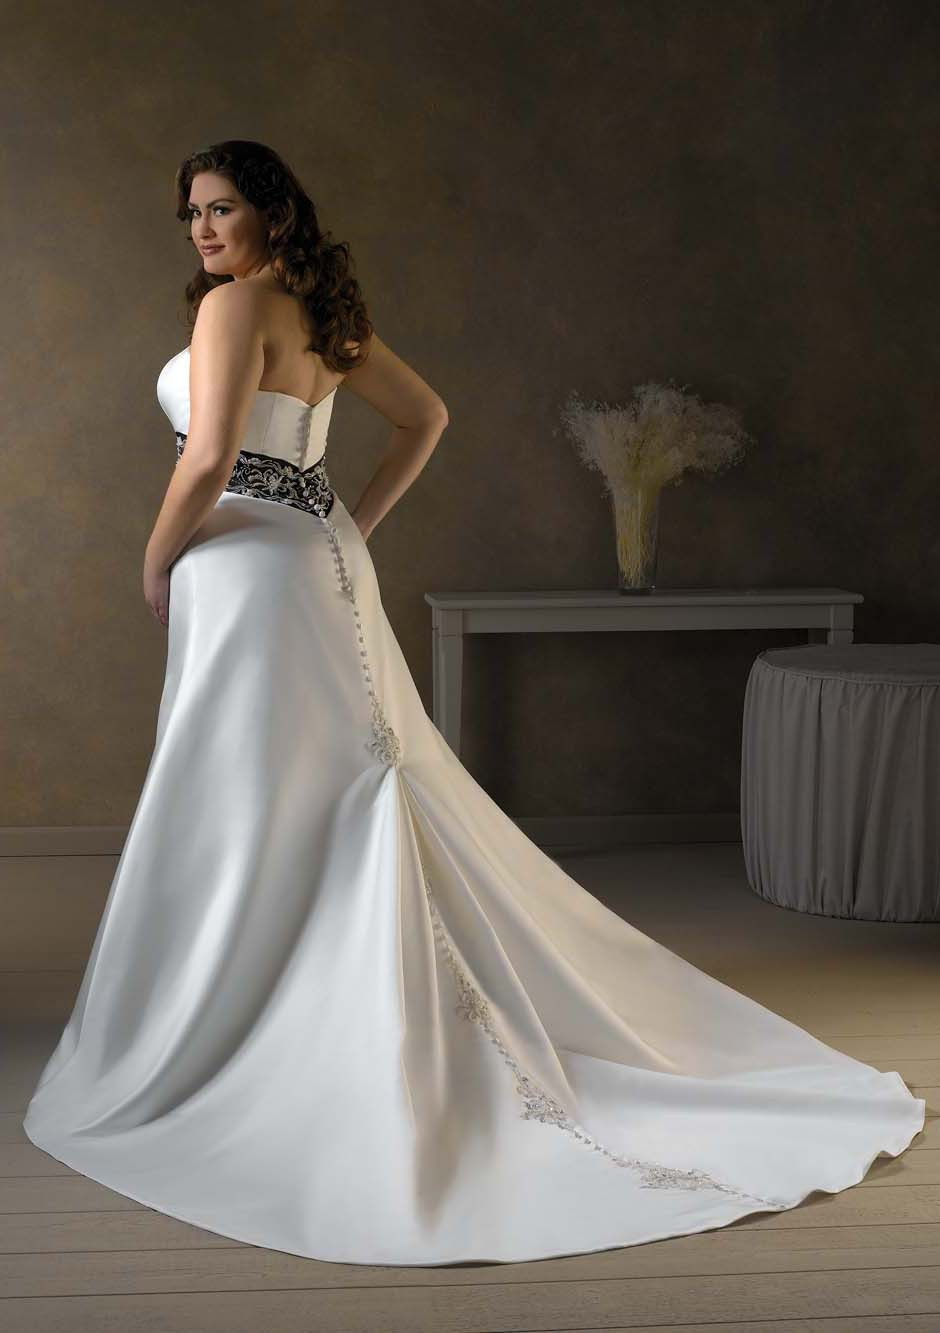 Wedding dress fitted lace wedding dress stella york for Fitted wedding dresses for plus size